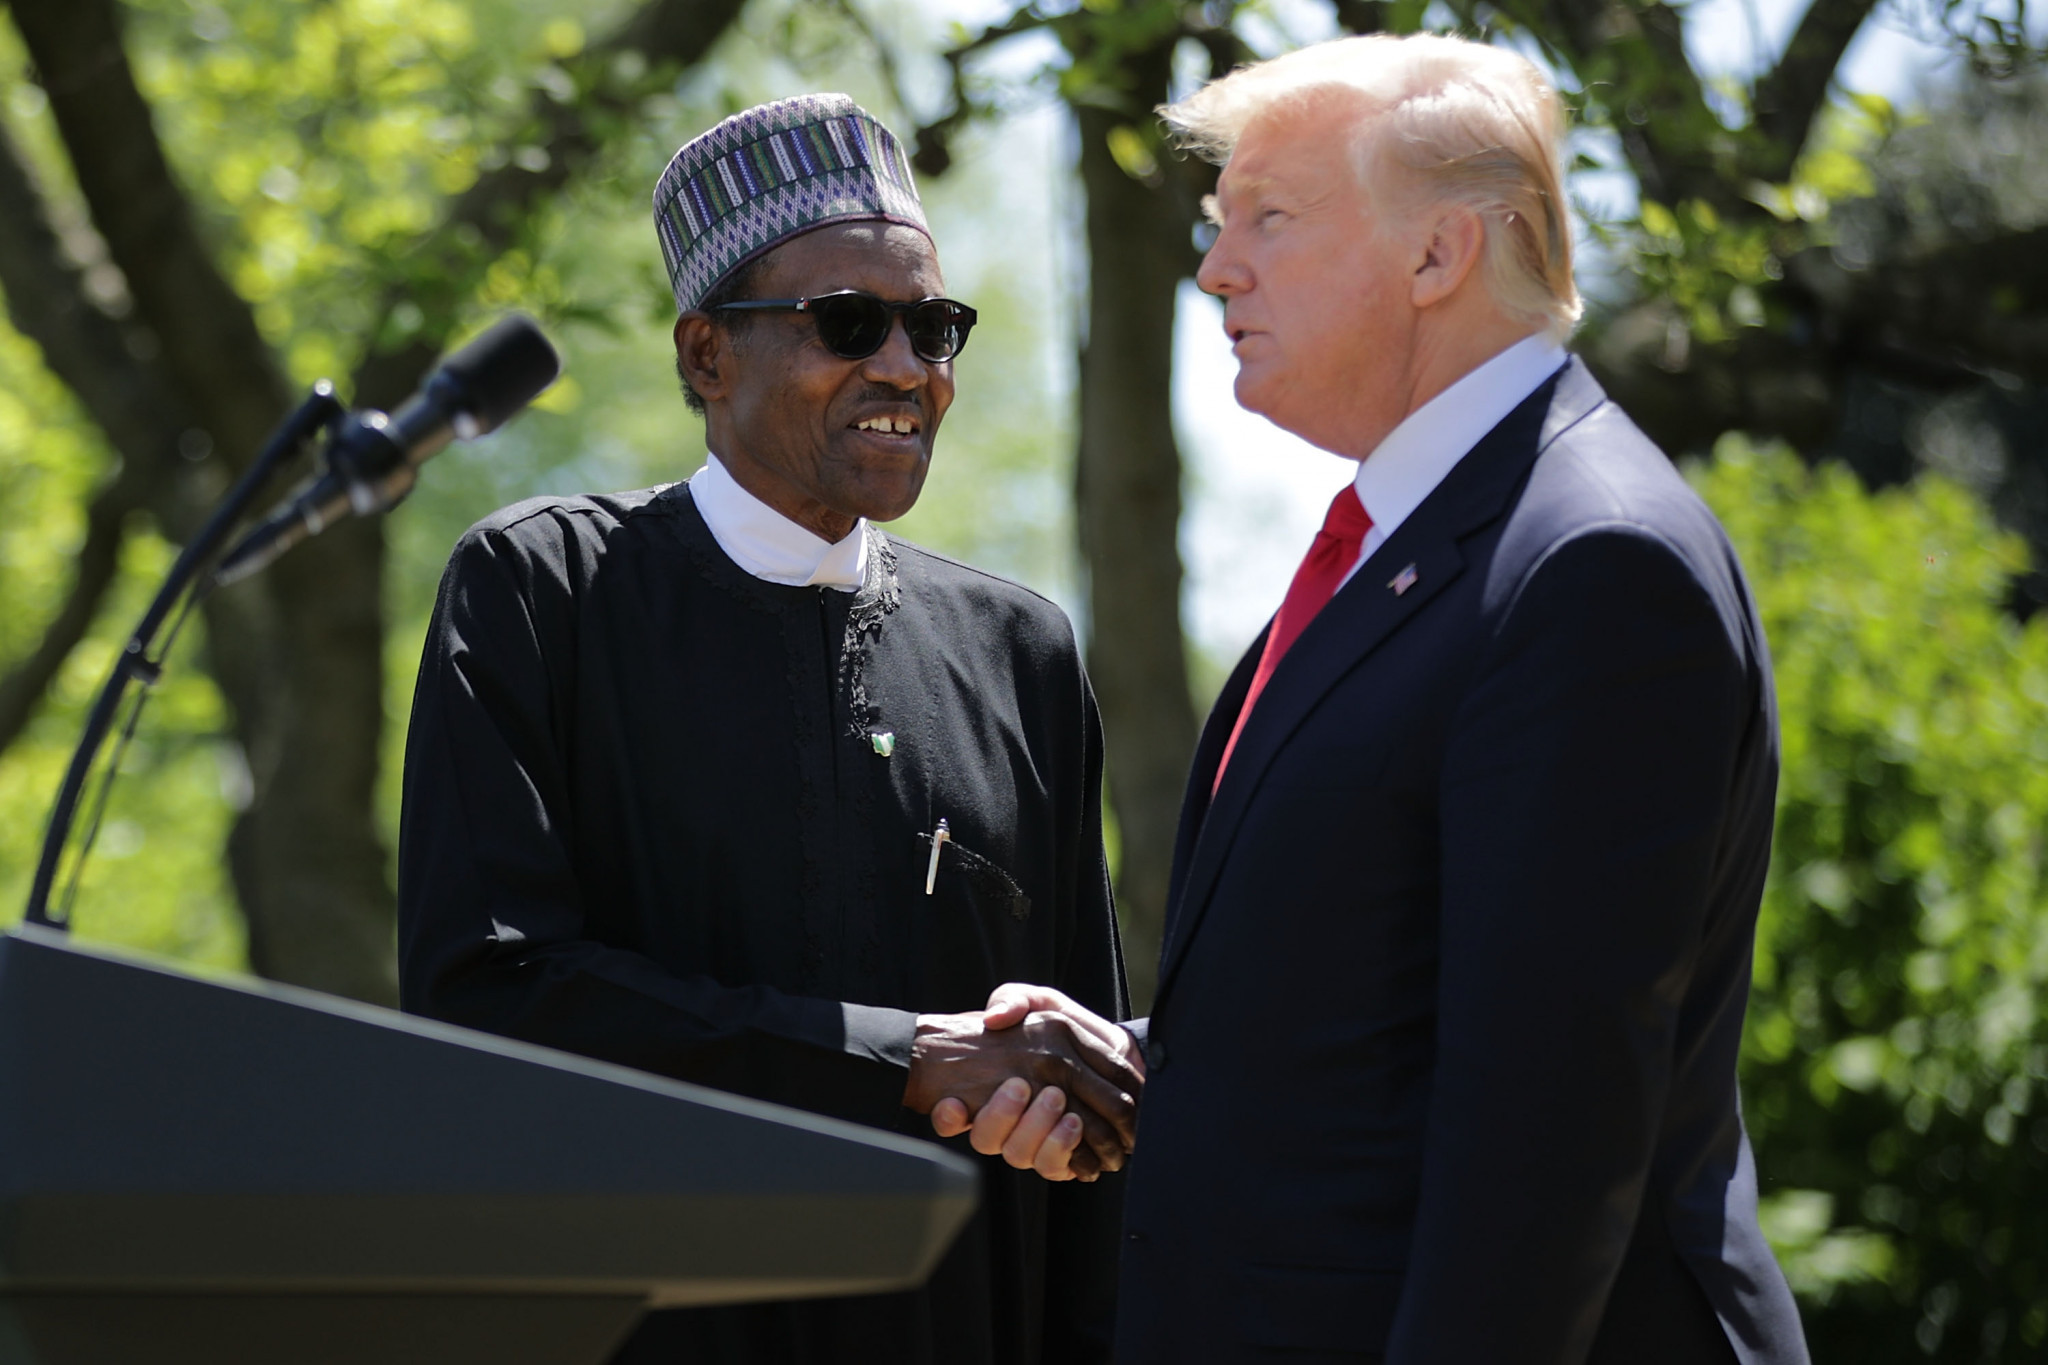 Trump ignores FIFA warning as calls on African countries to back United 2026 World Cup bid